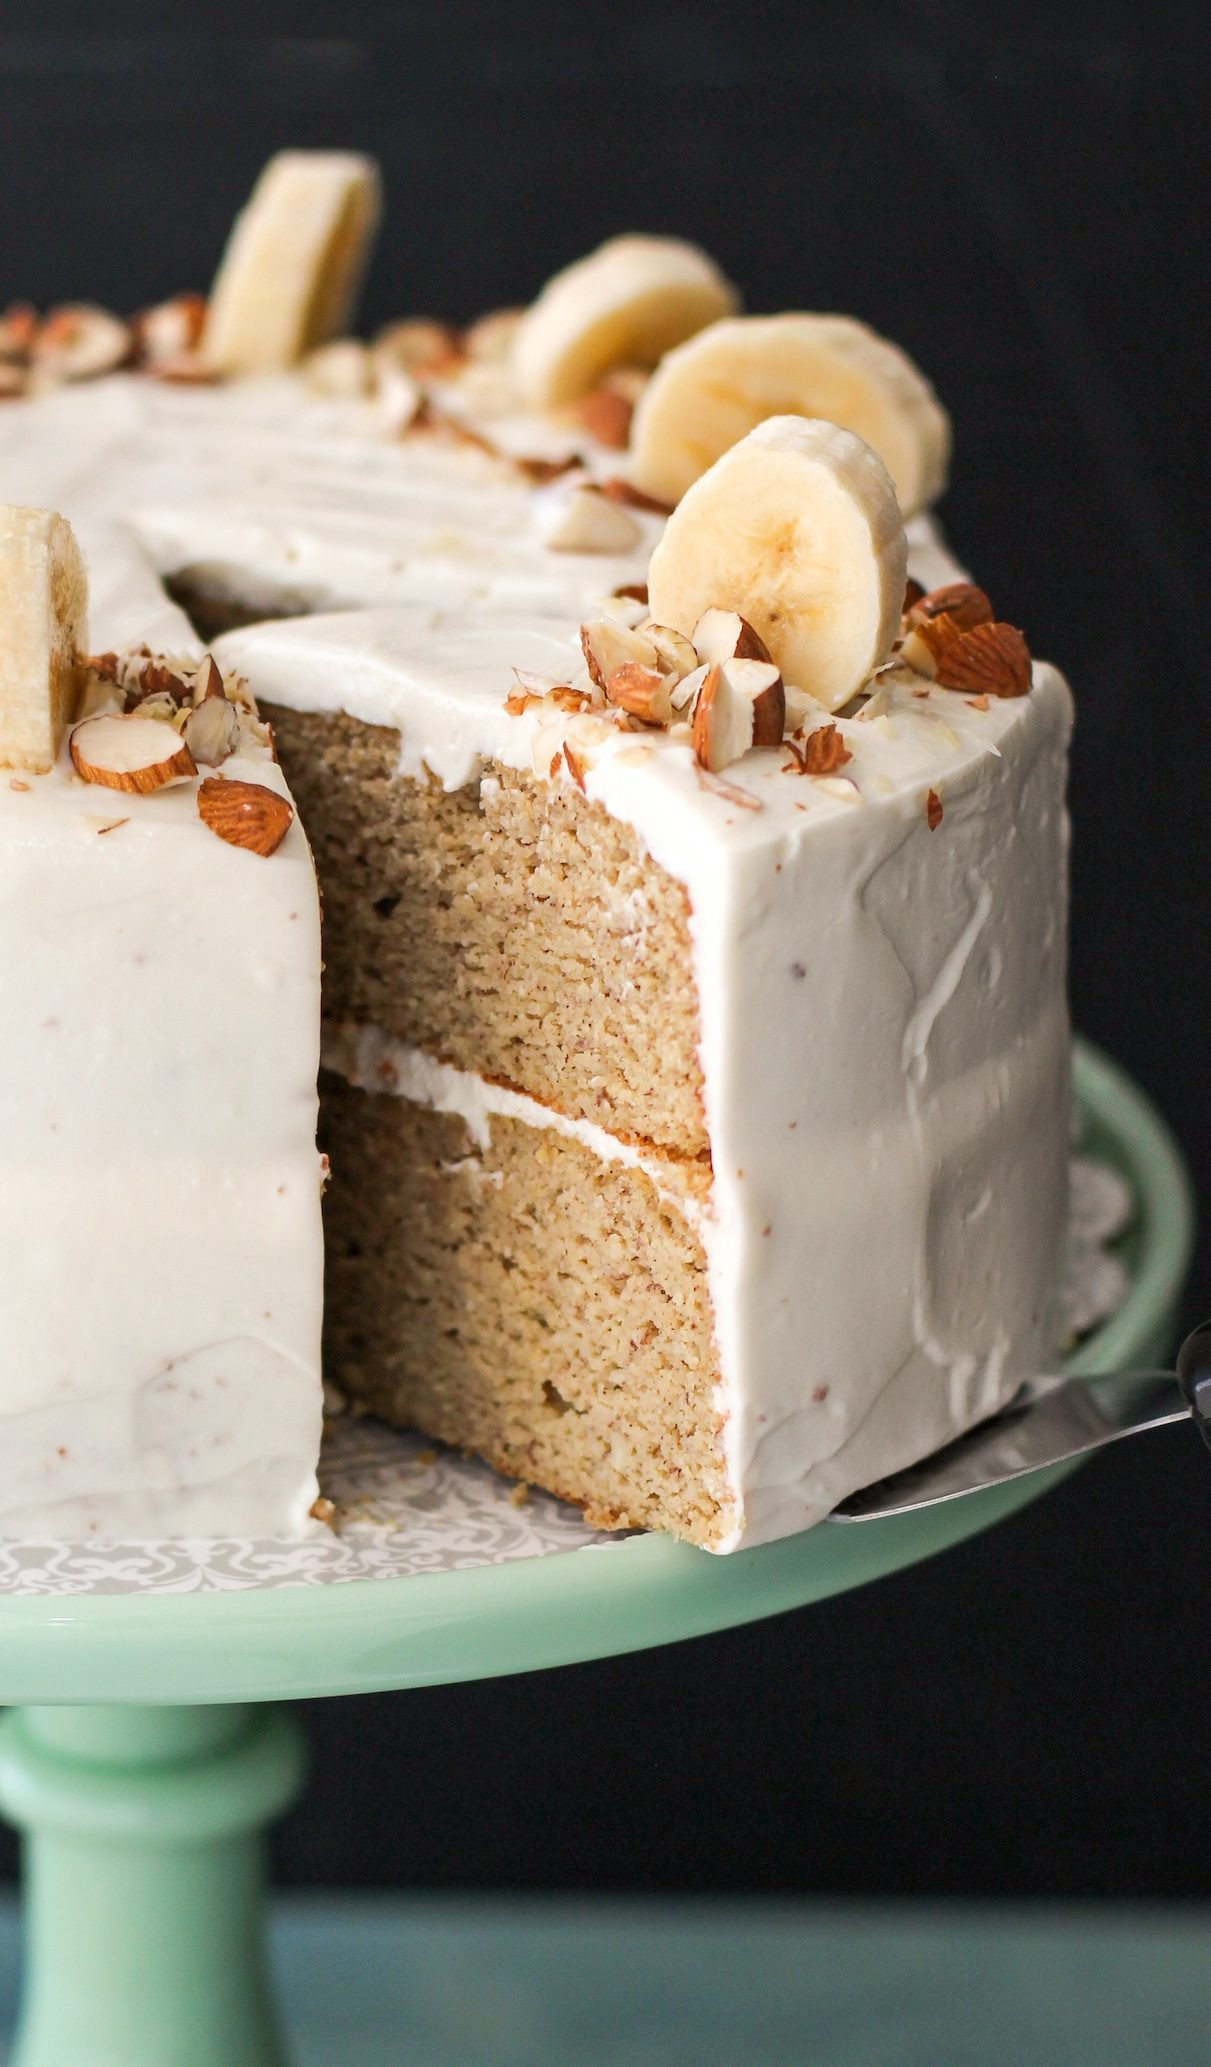 Healthy Banana Dessert  Gluten Free Healthy Banana Cake with Cream Cheese Frosting